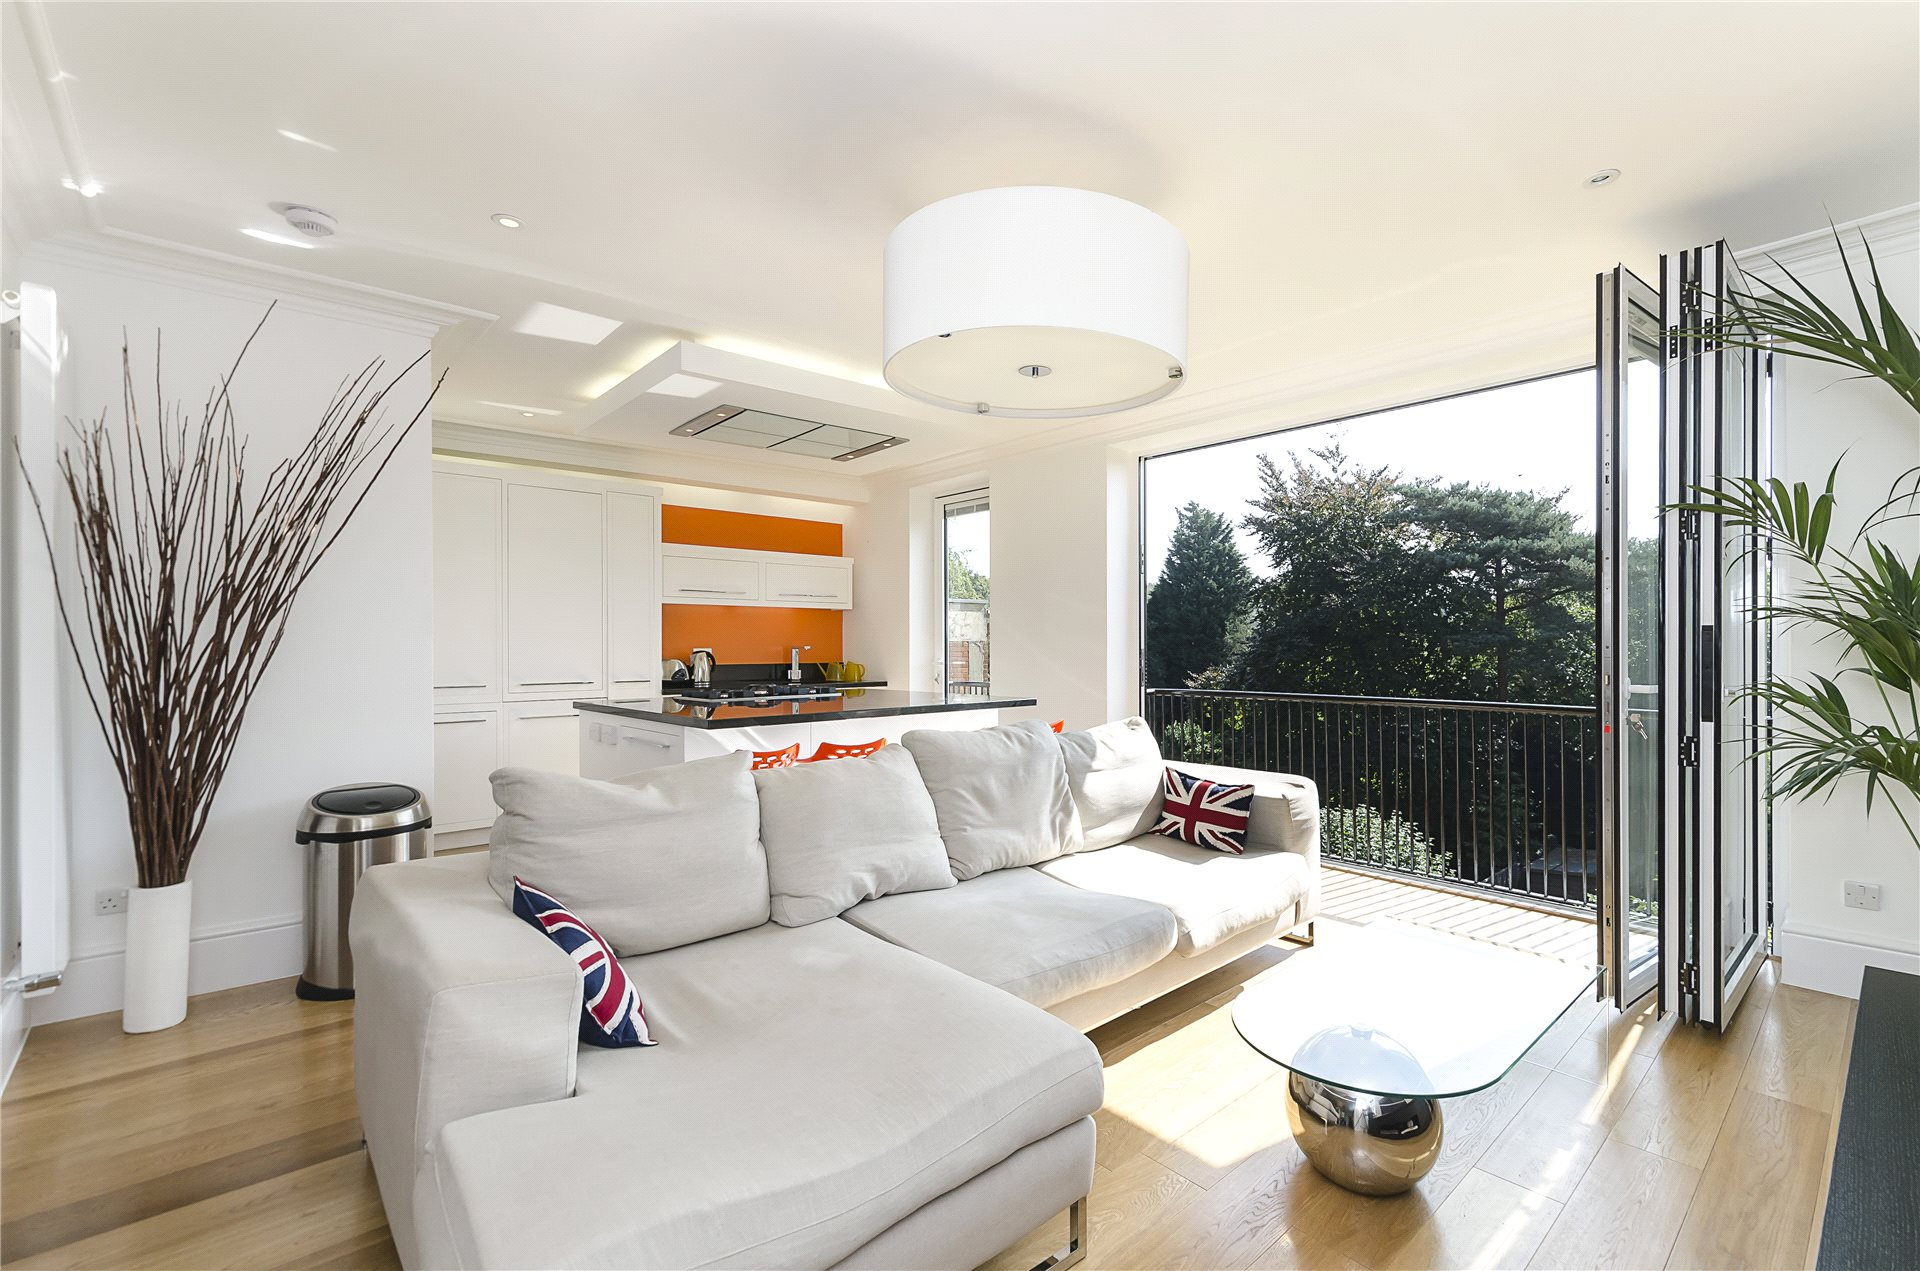 4-Bedroom--apartment-to-rent-in-Redington-Road-Hampstead-London-NW3-BEL020263_18